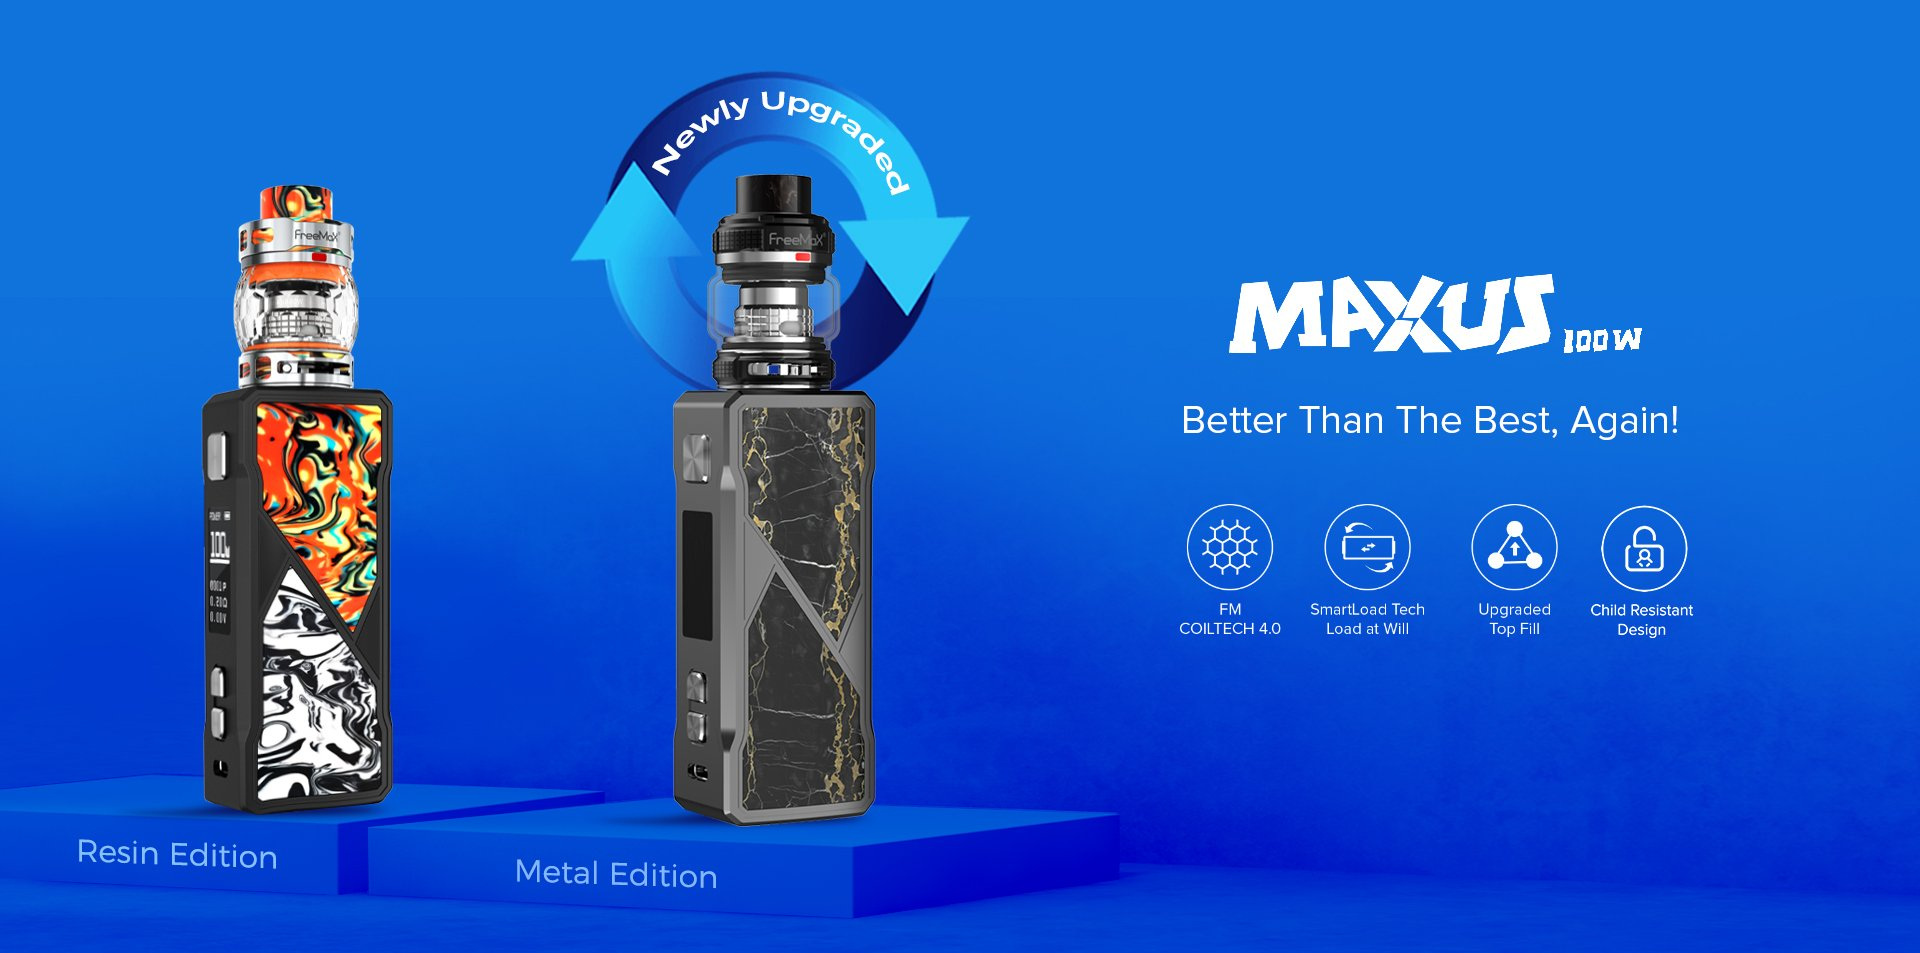 maxus-100w-better-than-the-best